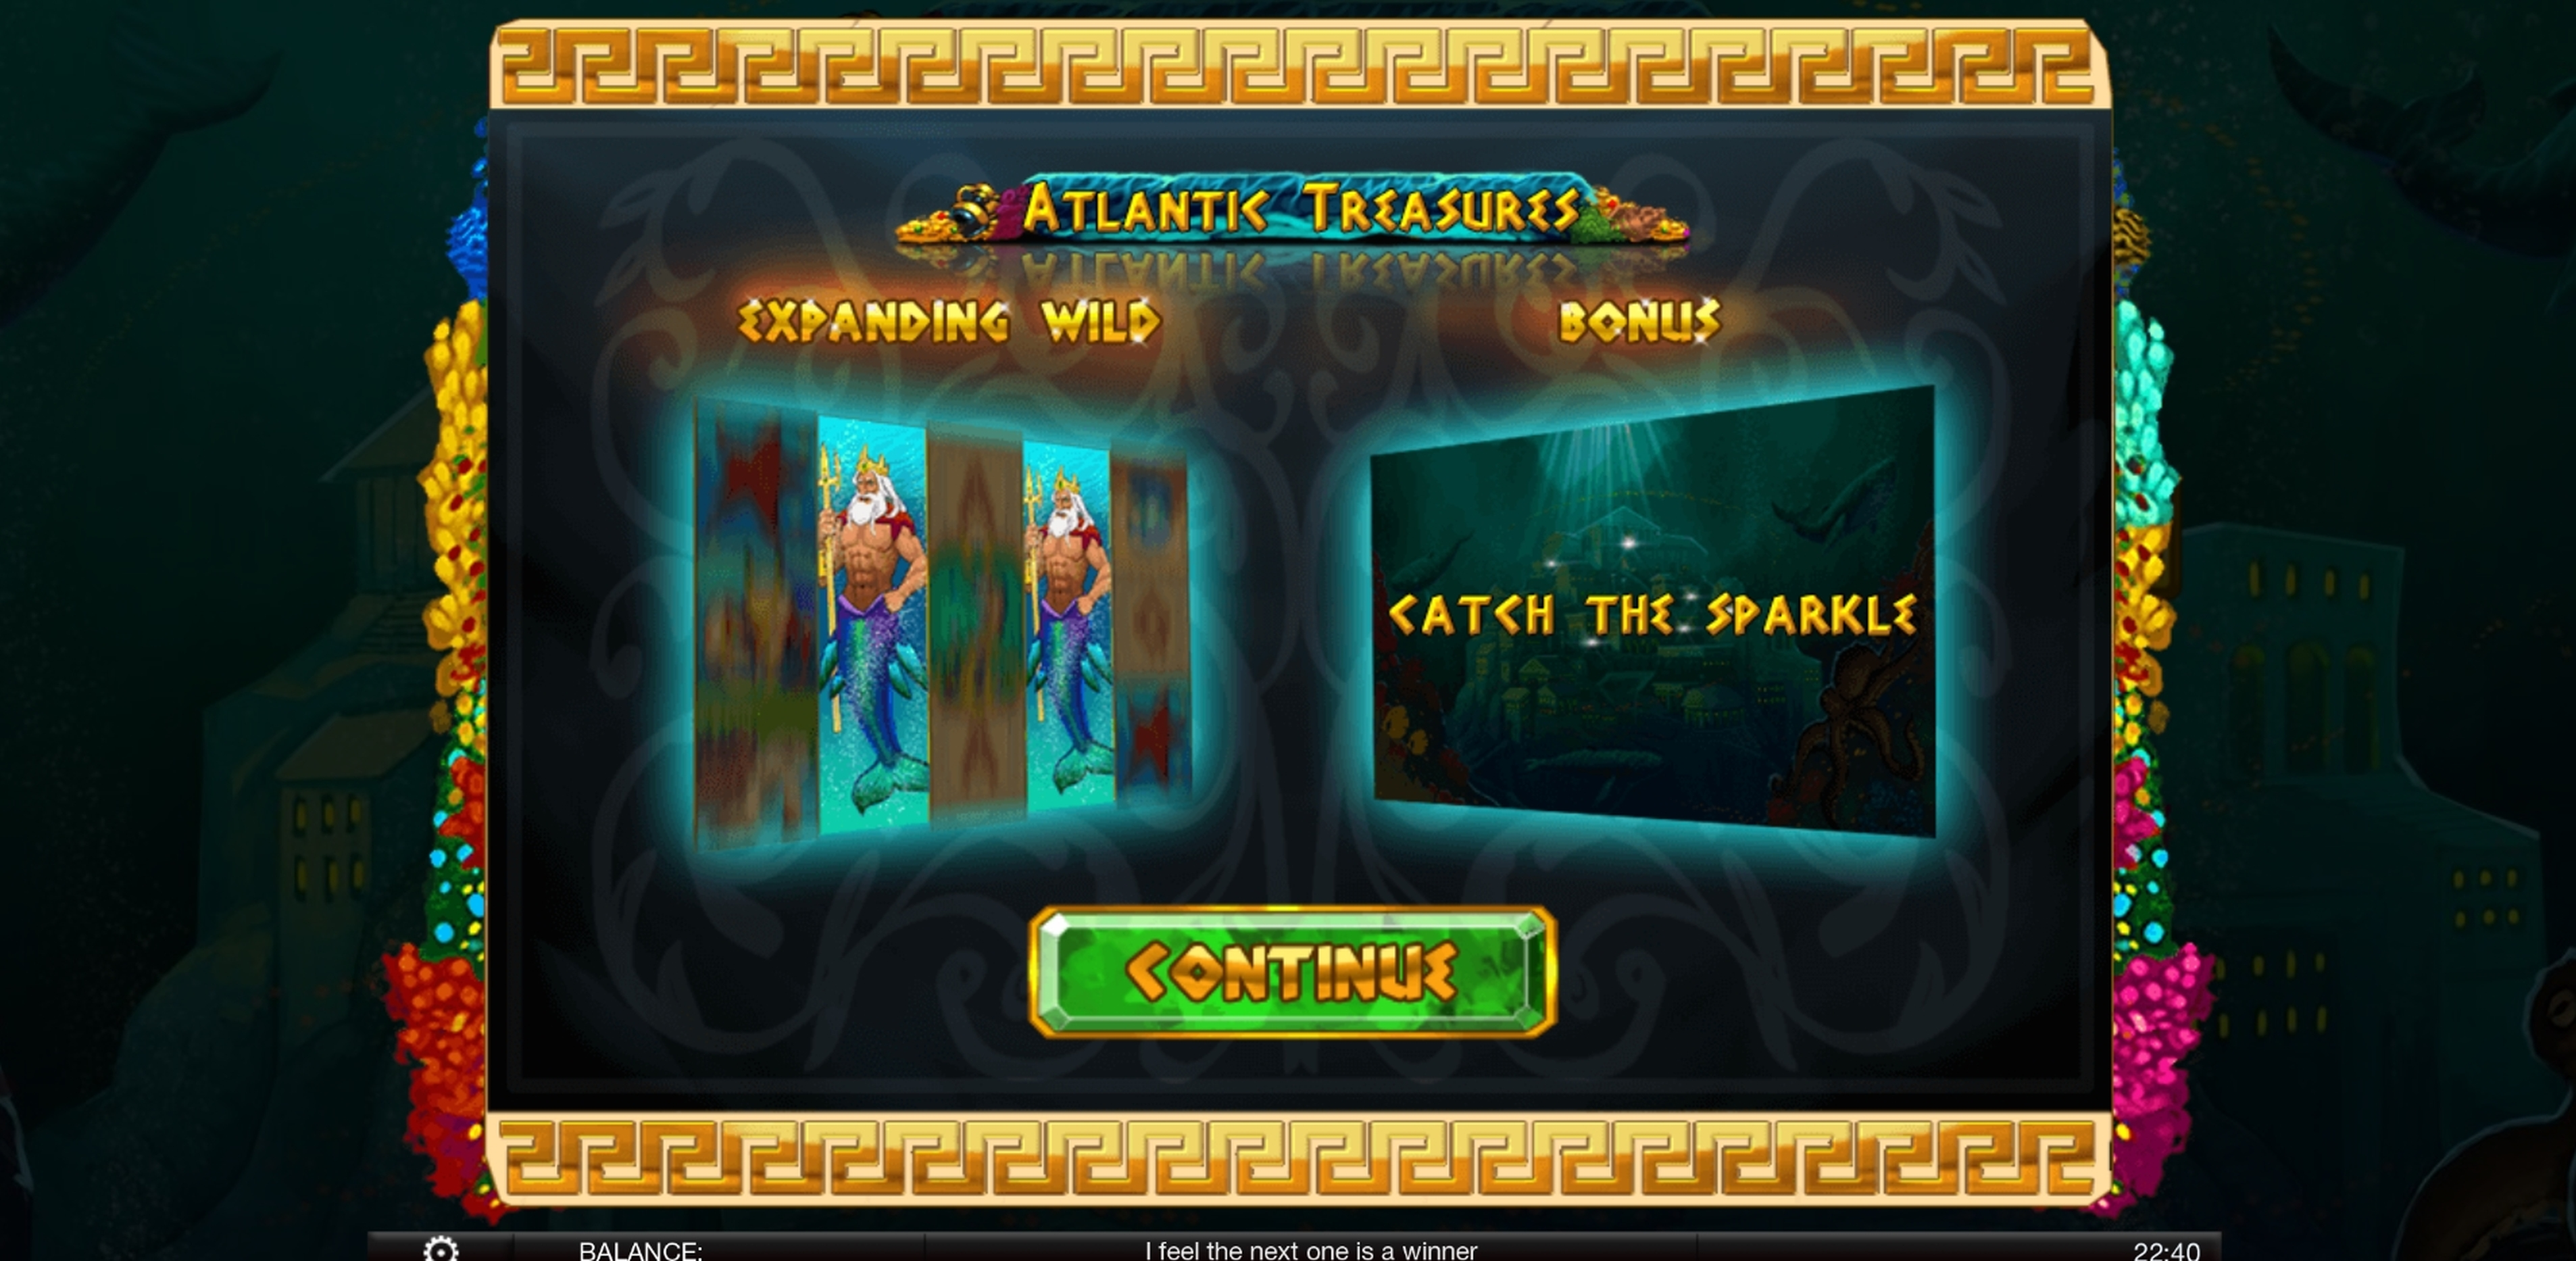 Play Atlantic Treasures Free Casino Slot Game by Spinomenal